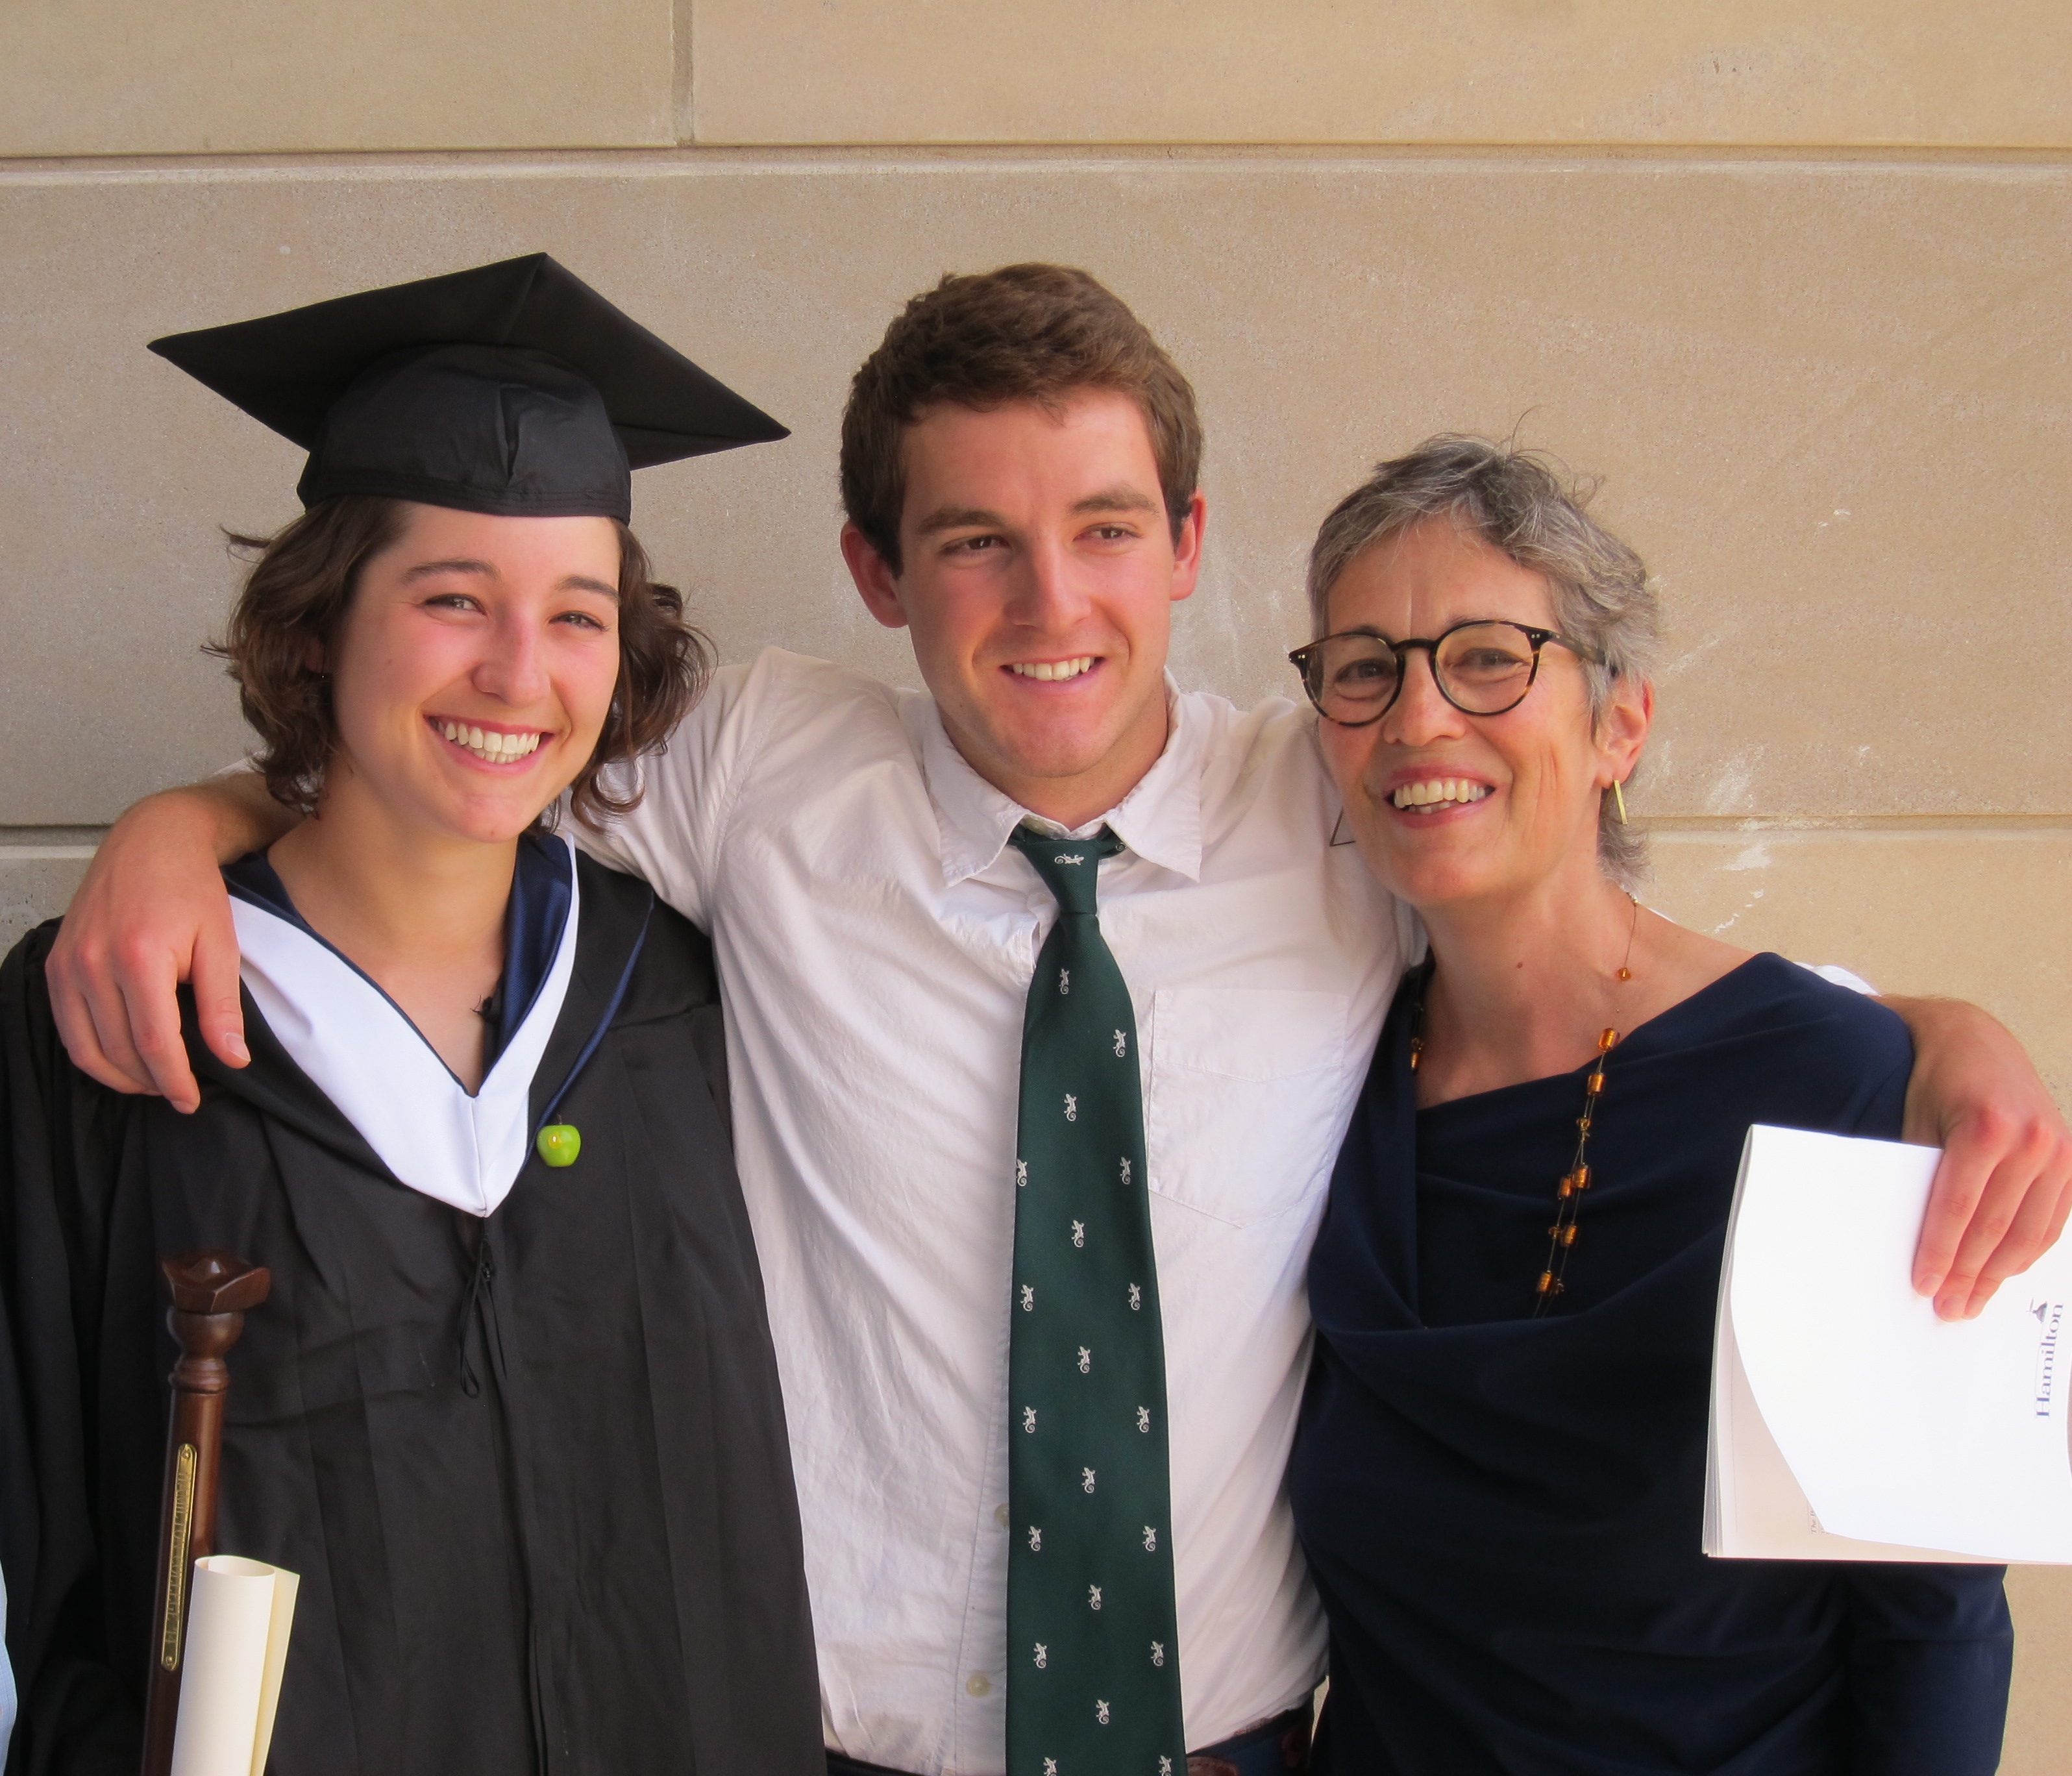 Kate Emlen with her daughter and son